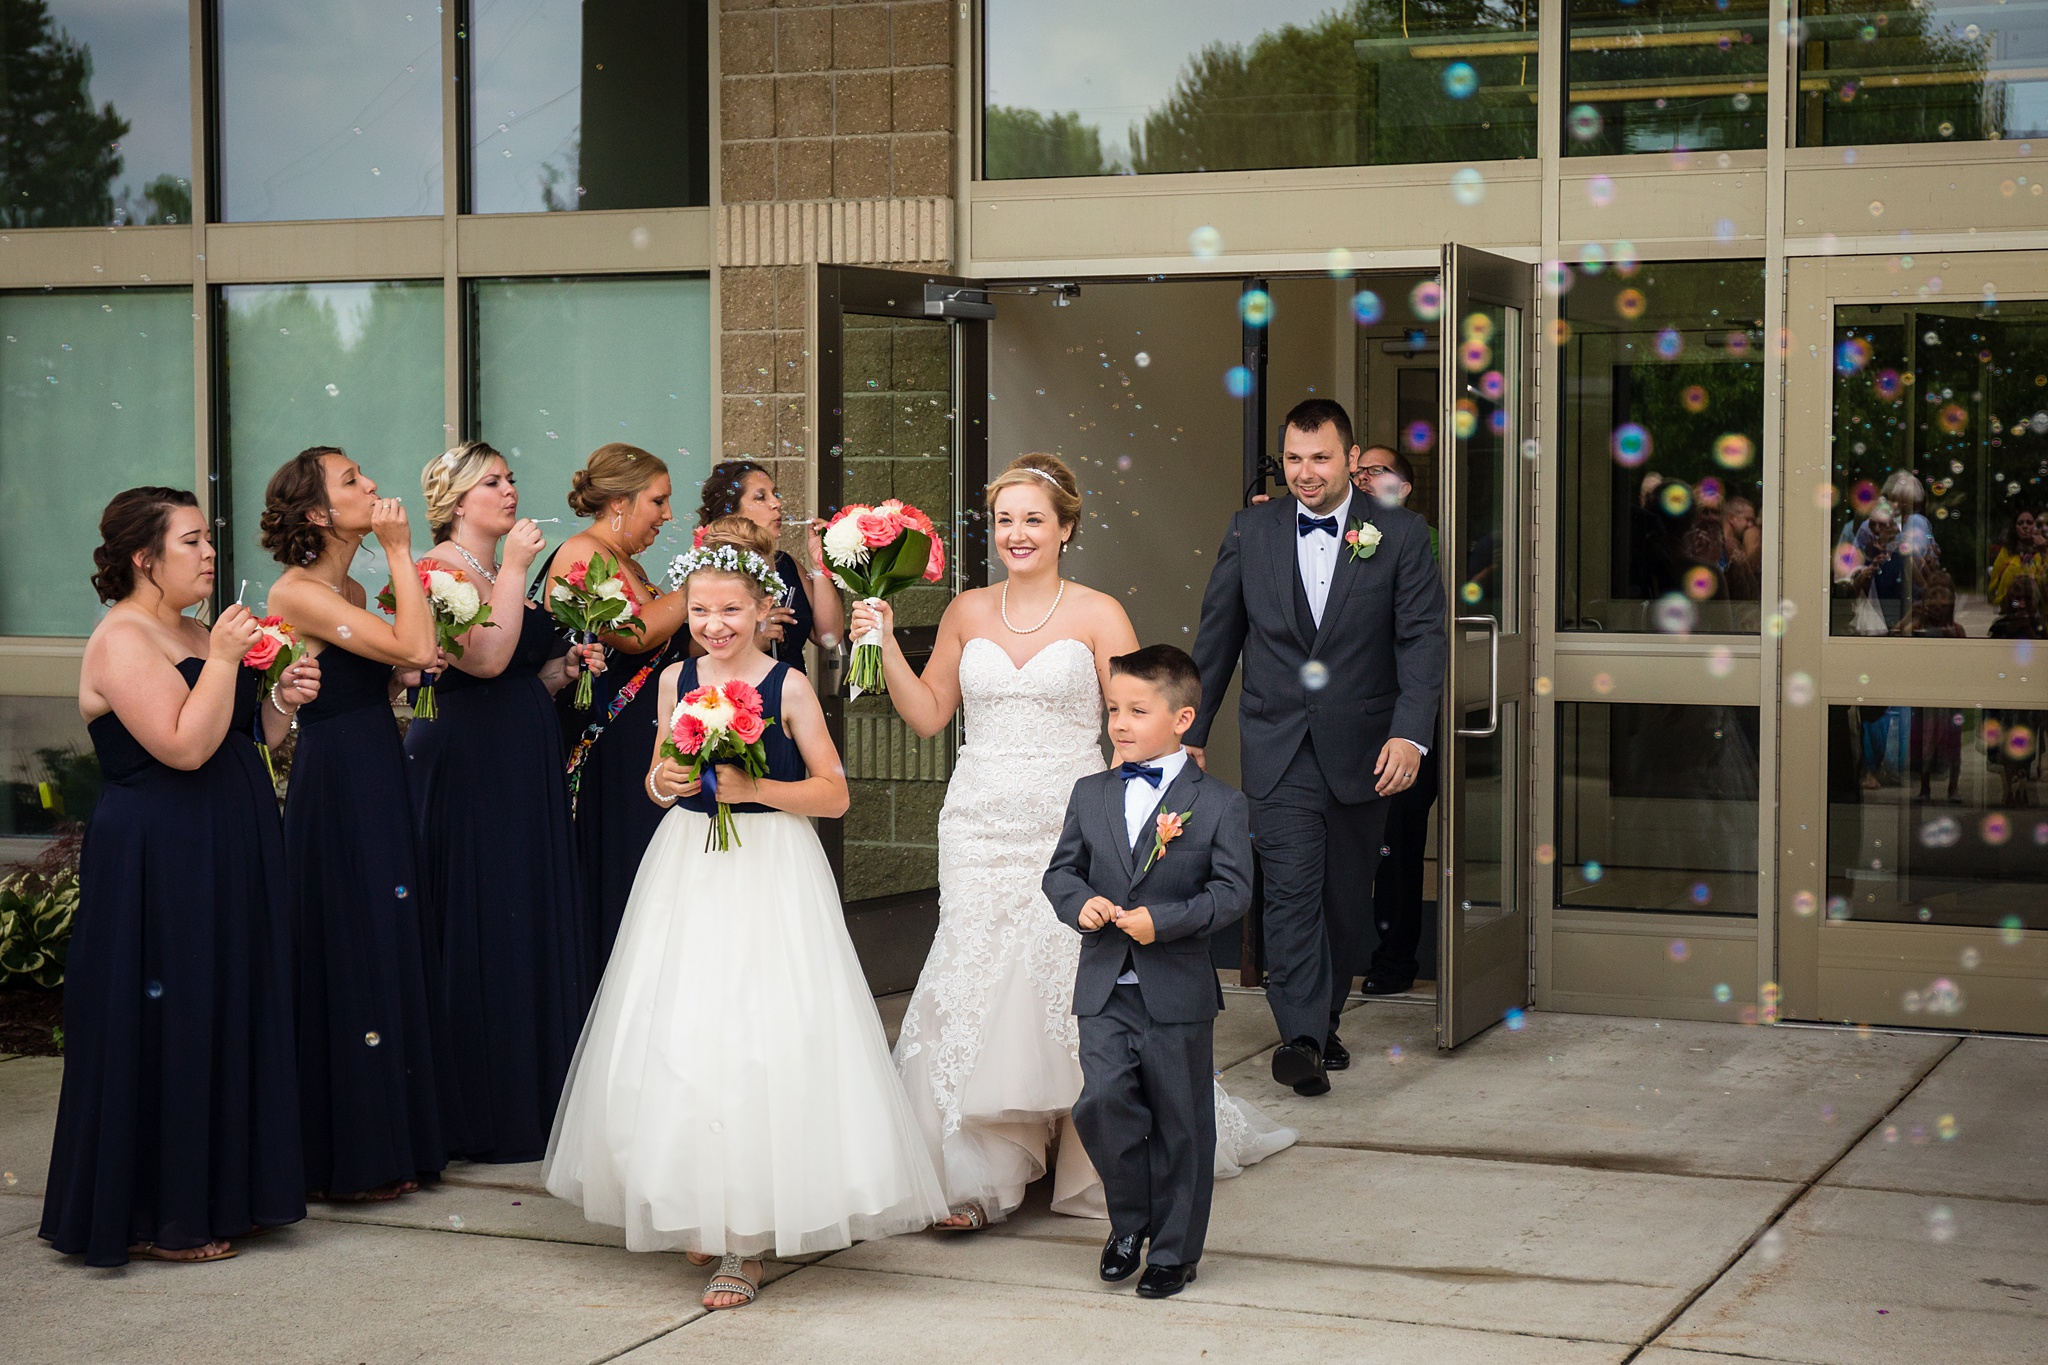 Brandon_Shafer_Photography_Grand_Rapids_Bride_Groom_0024.jpg